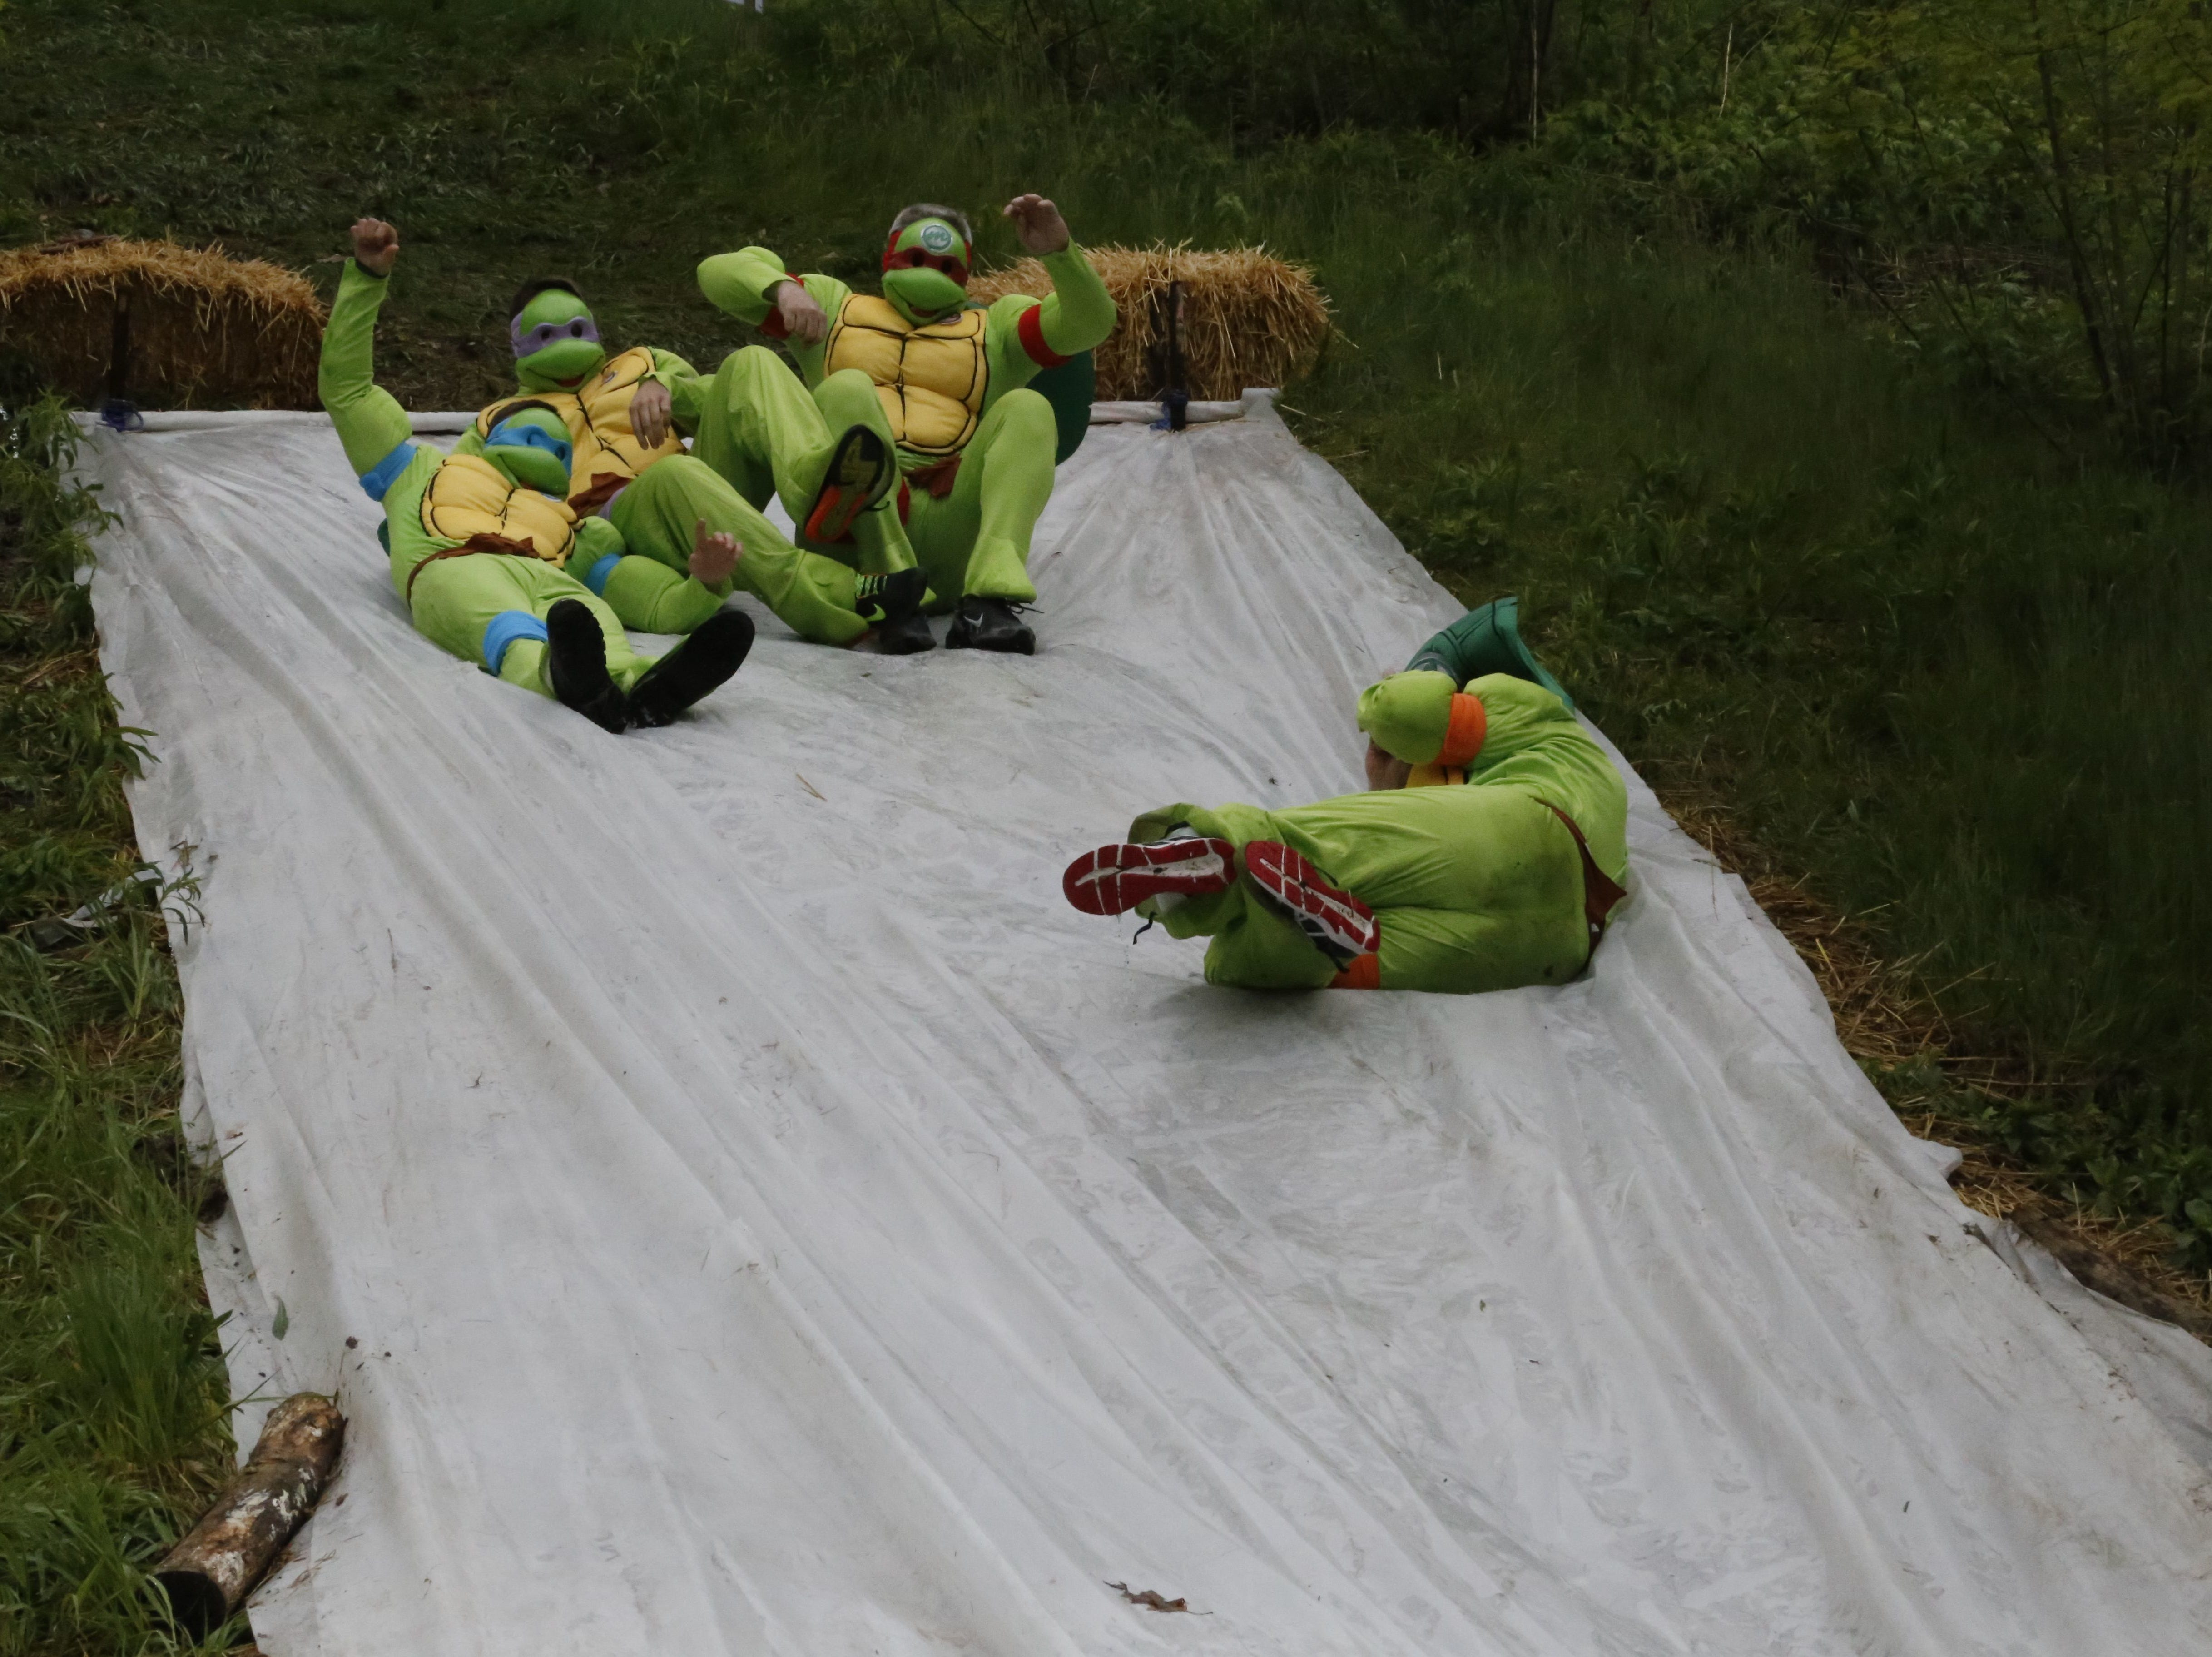 2017: Hundreds of people participated in the Tough Turtle obstacle race to benefit the Ithaca Children's Garden on Saturday, May 6.